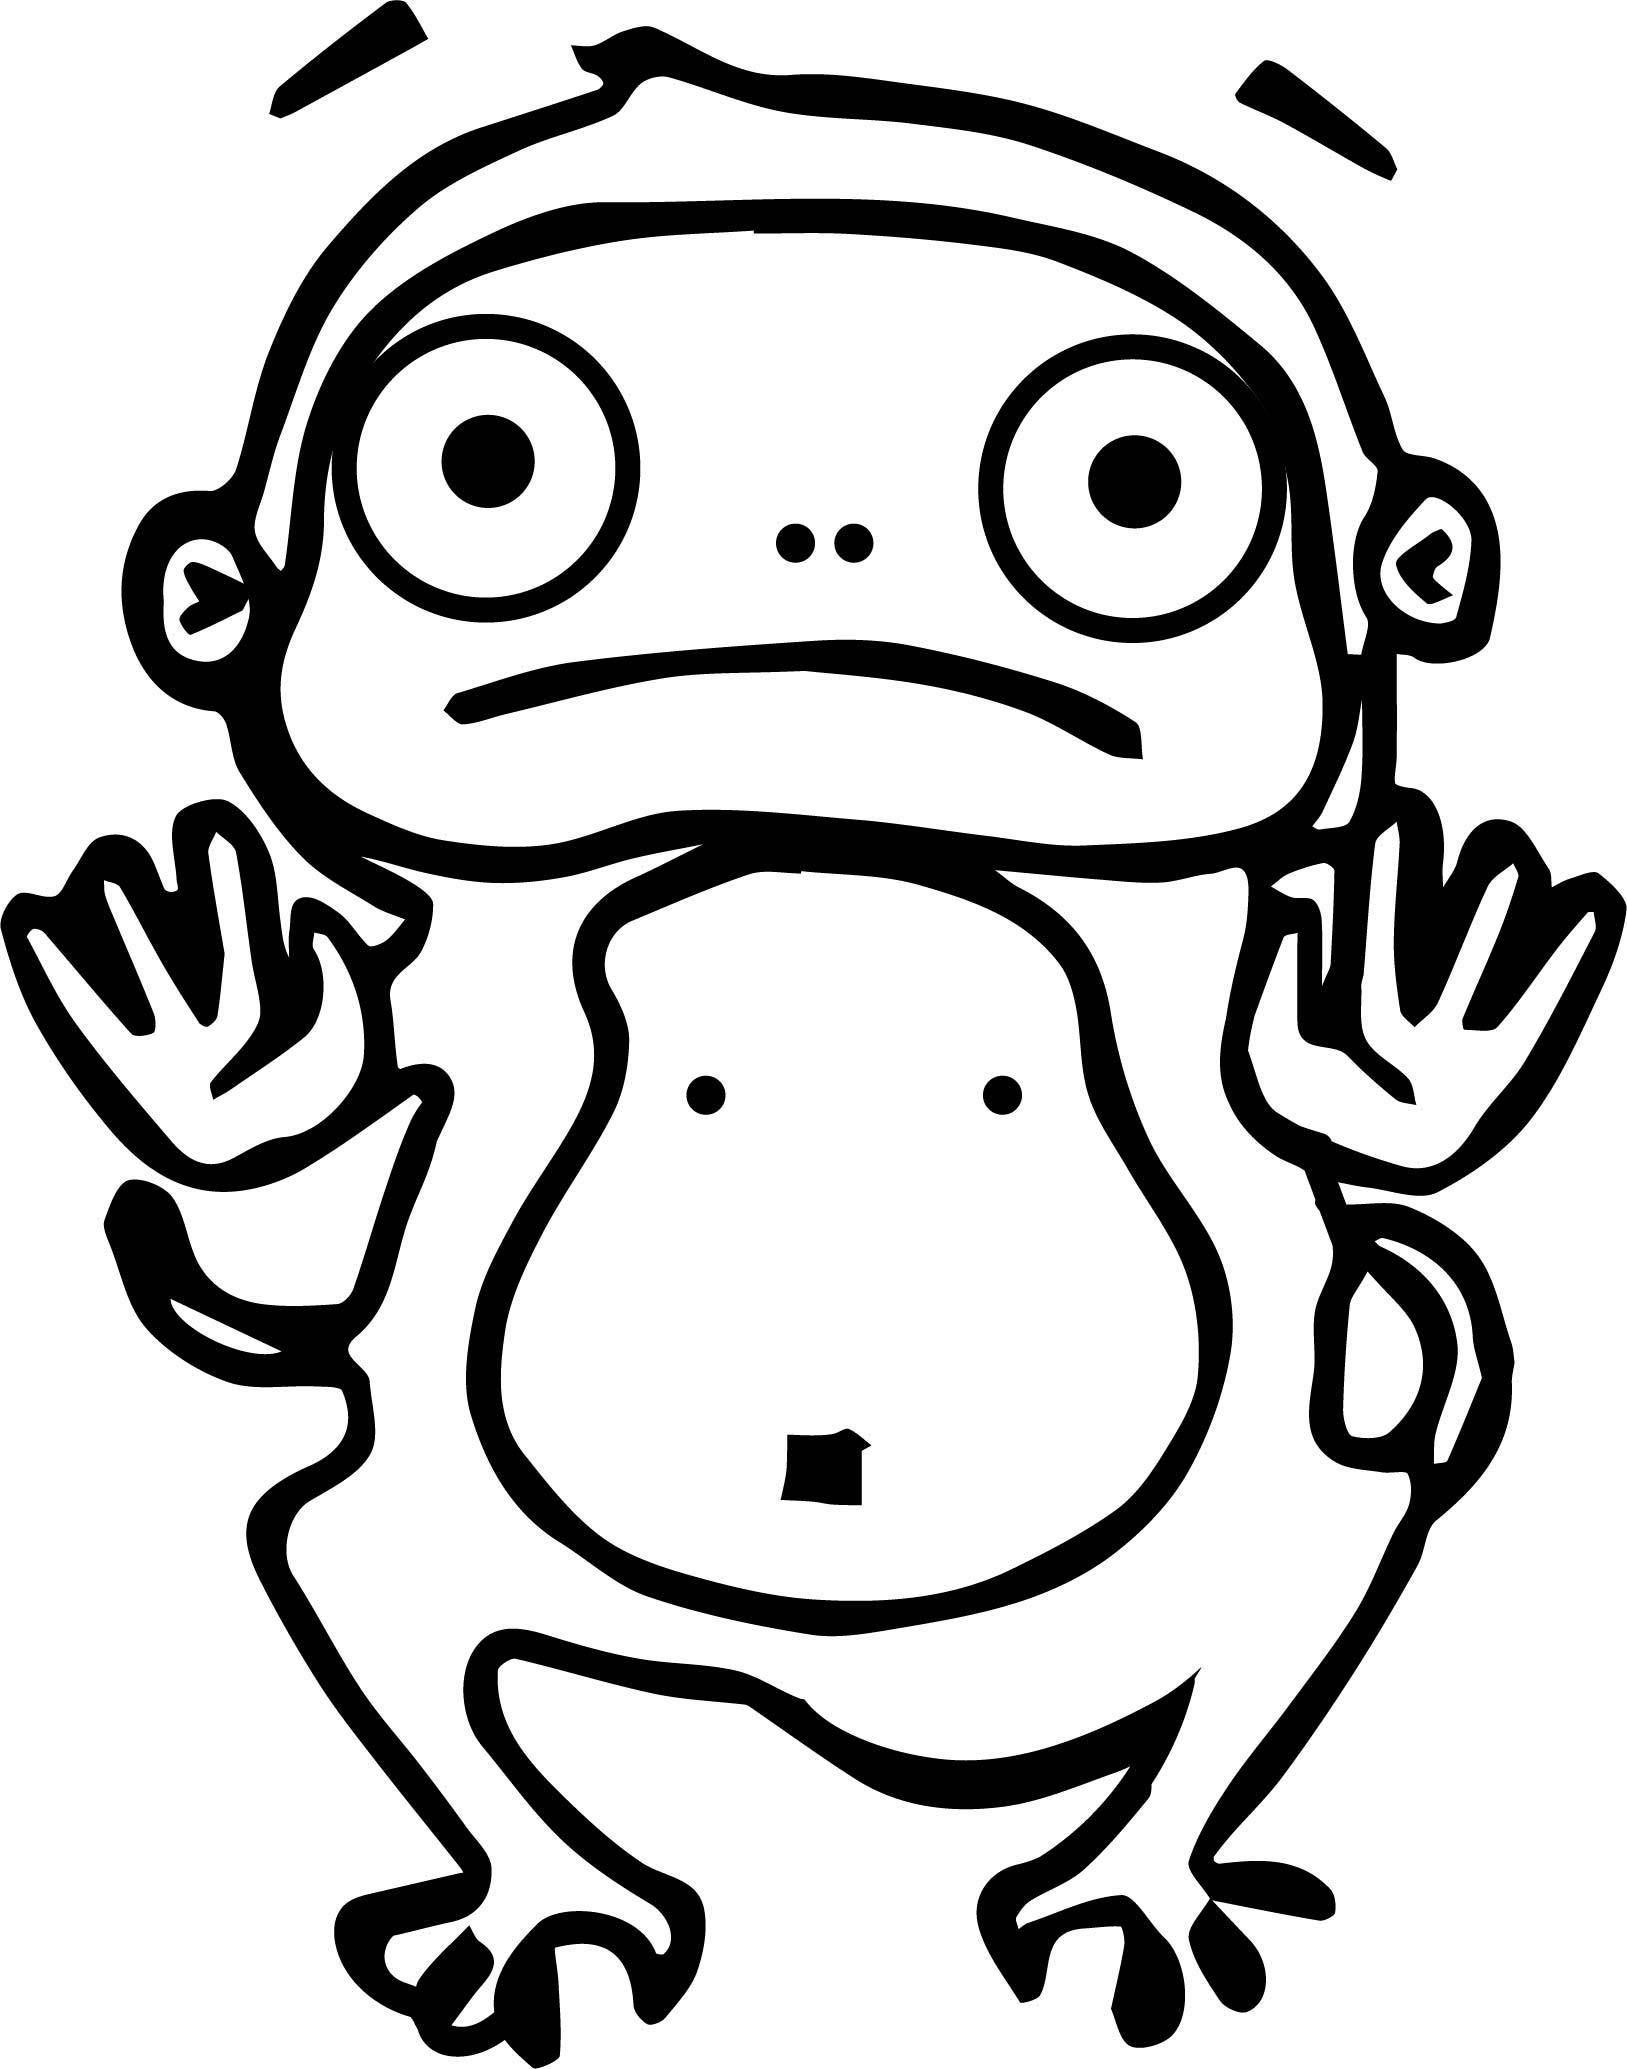 Monkey Cartoon Characters Coloring Page